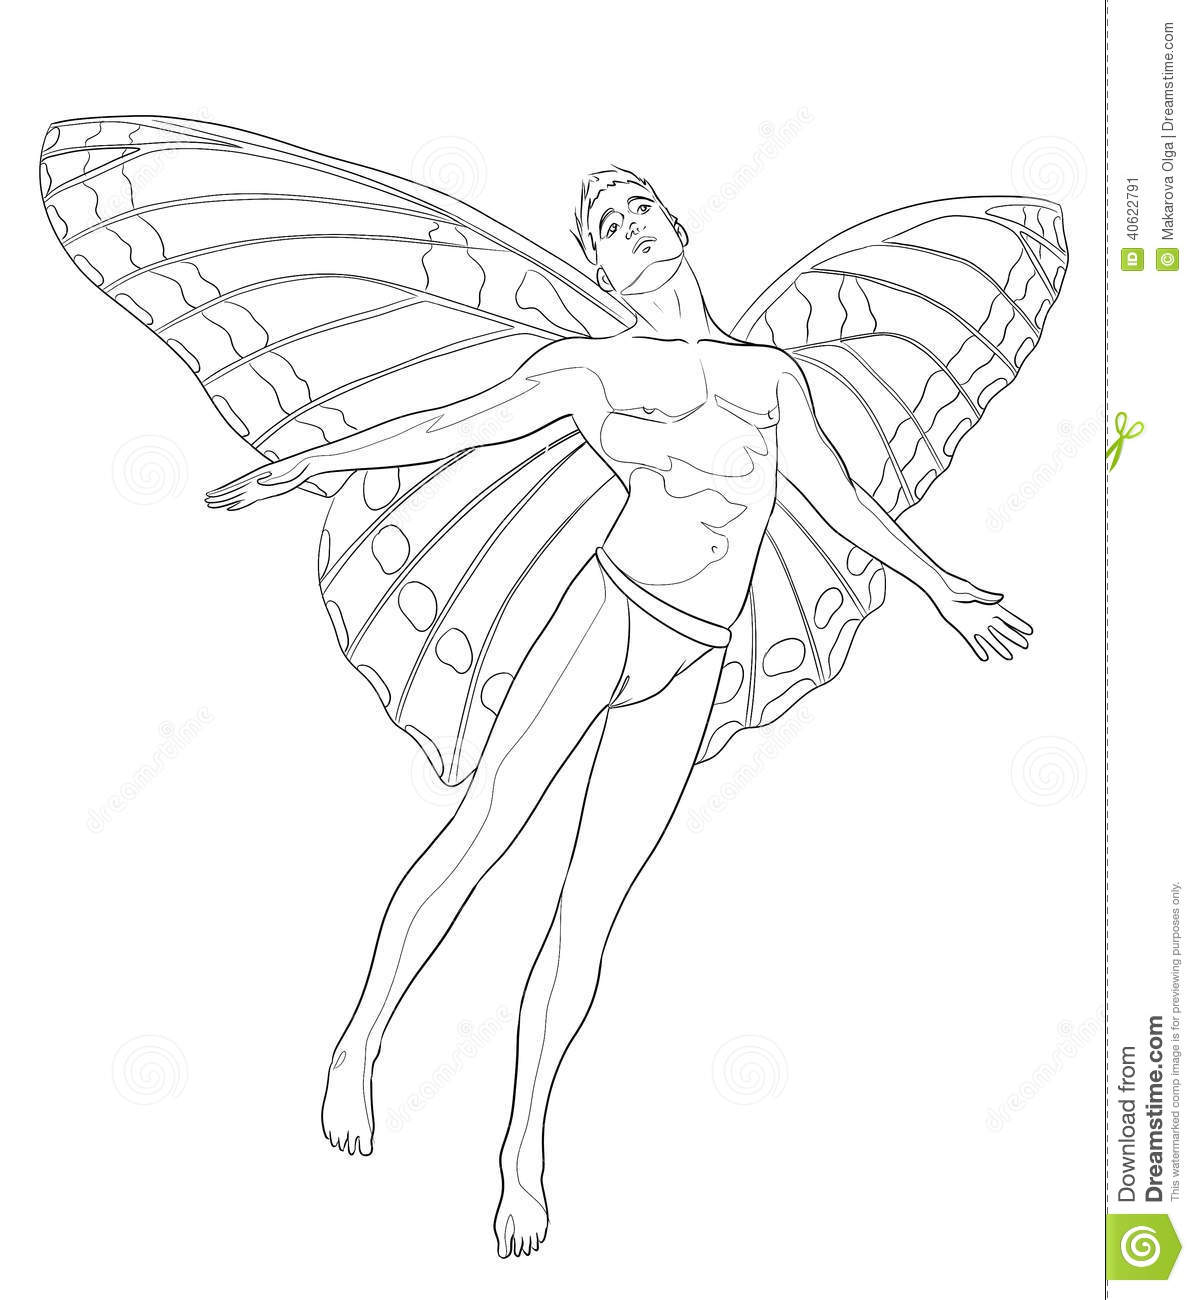 fairy man coloring page line art tale guy butterfly wings contour isolated white background 40622791 also with icolor fairies wee folk boy fairy icolor fairies wee folk on boy fairy coloring pages likewise 155 best images about faerie coloring pages on pinterest on boy fairy coloring pages also tooth fairy coloring pages getcoloringpages  on boy fairy coloring pages likewise phee s coloring pages projects and drawings to color for all ages on boy fairy coloring pages